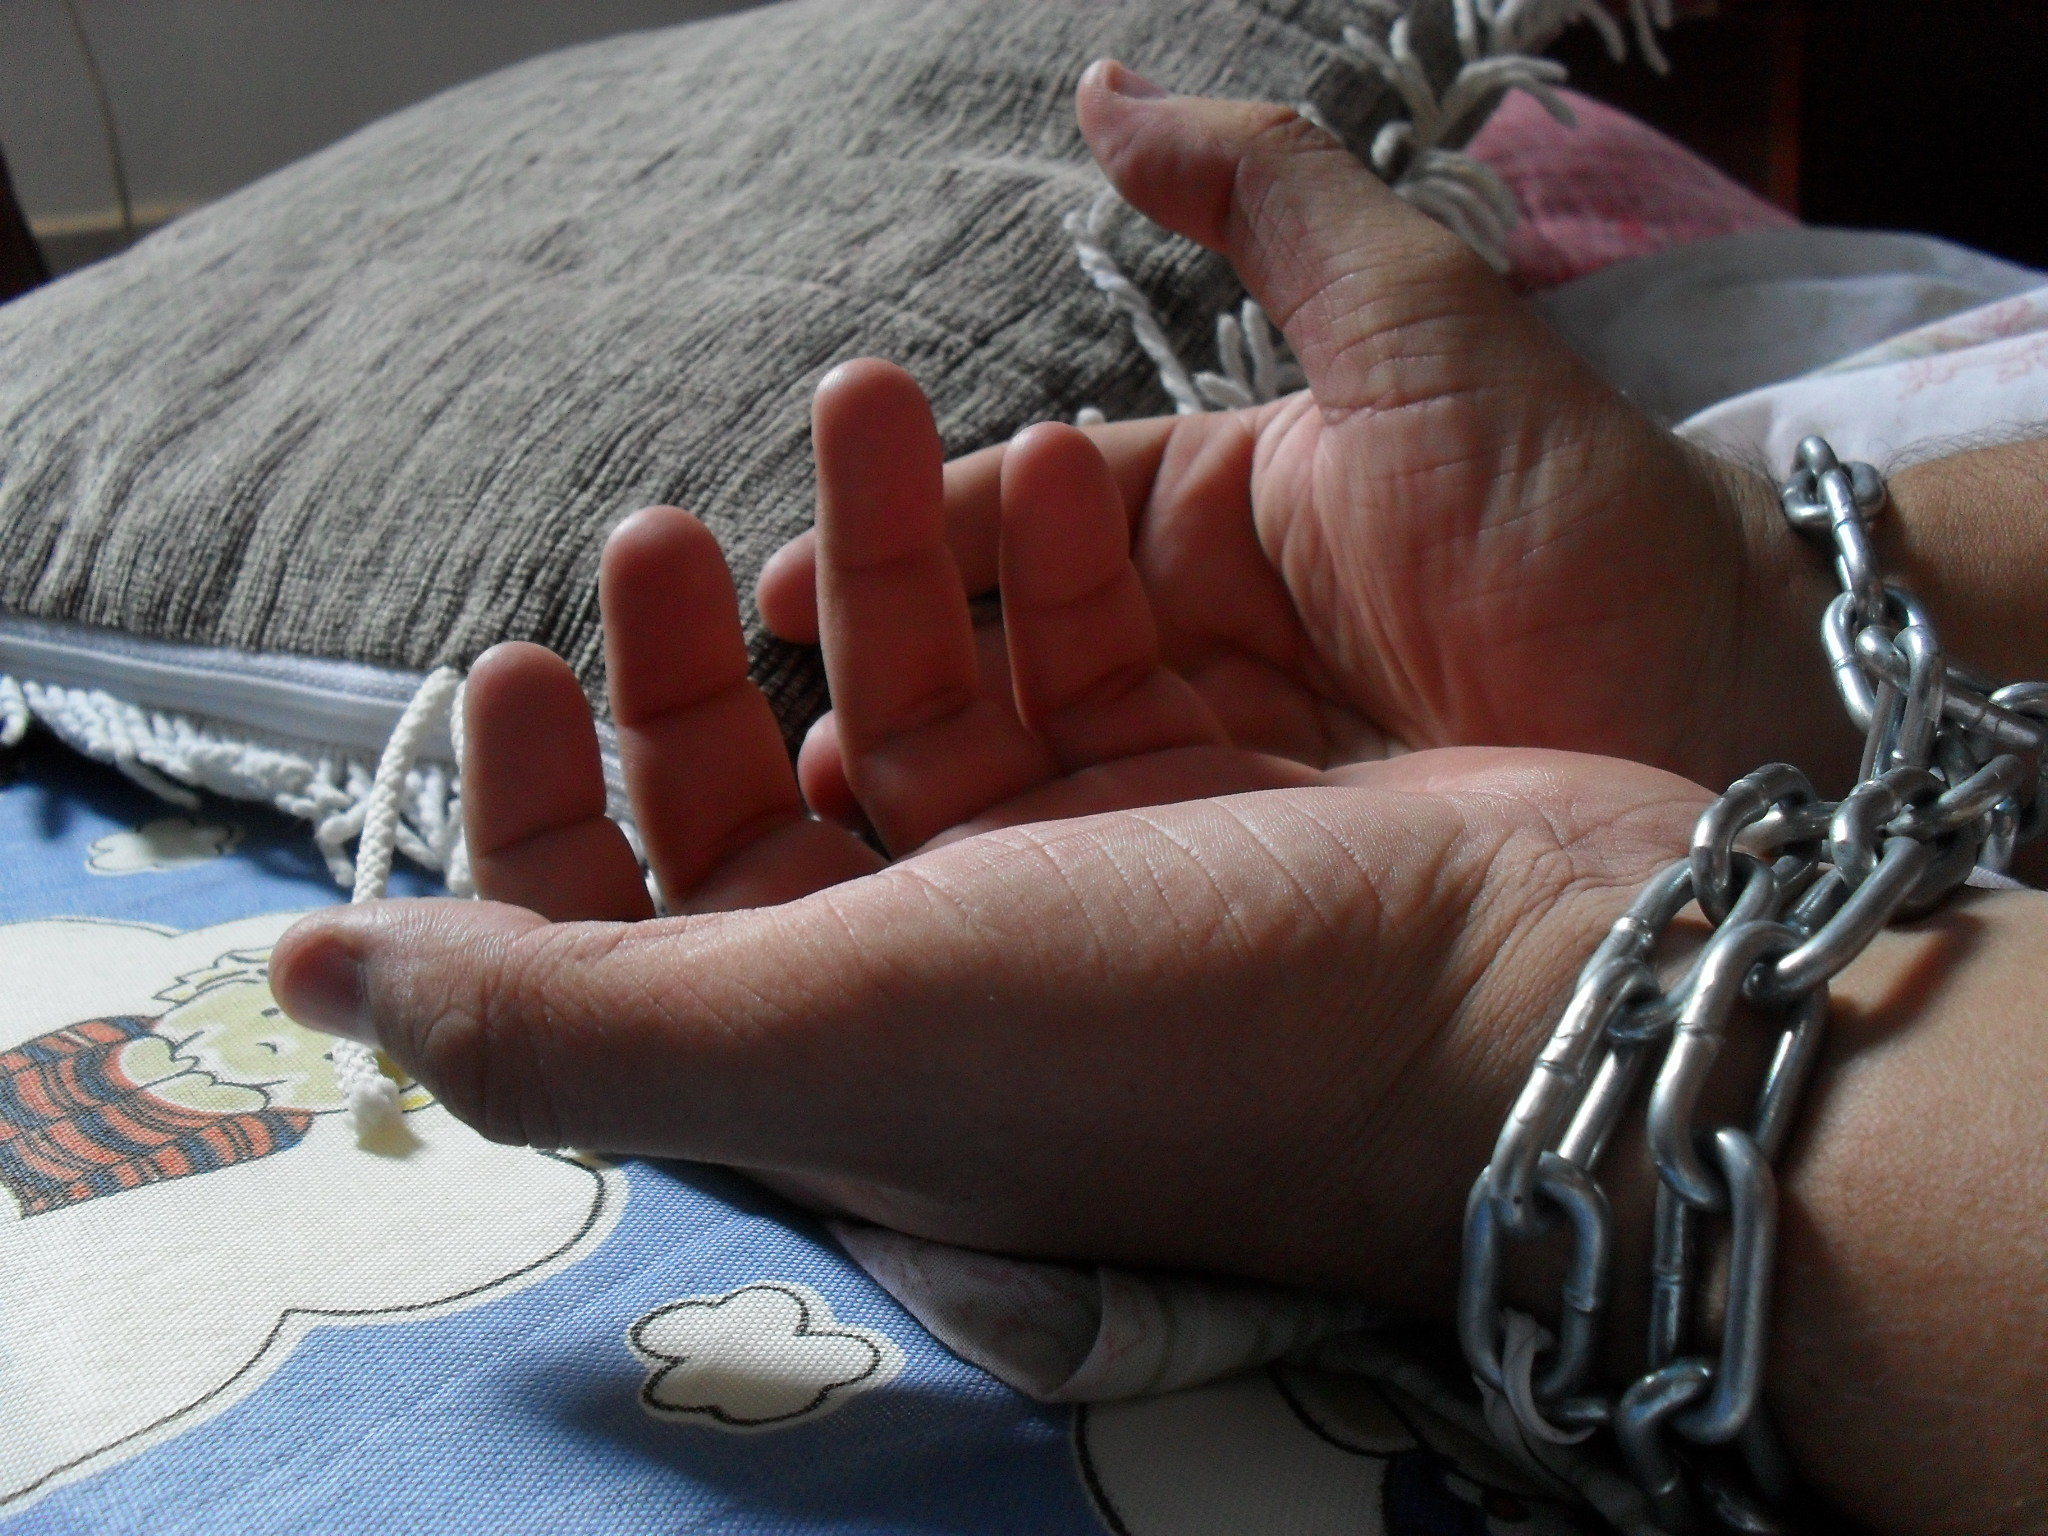 Generic image showing bound hands